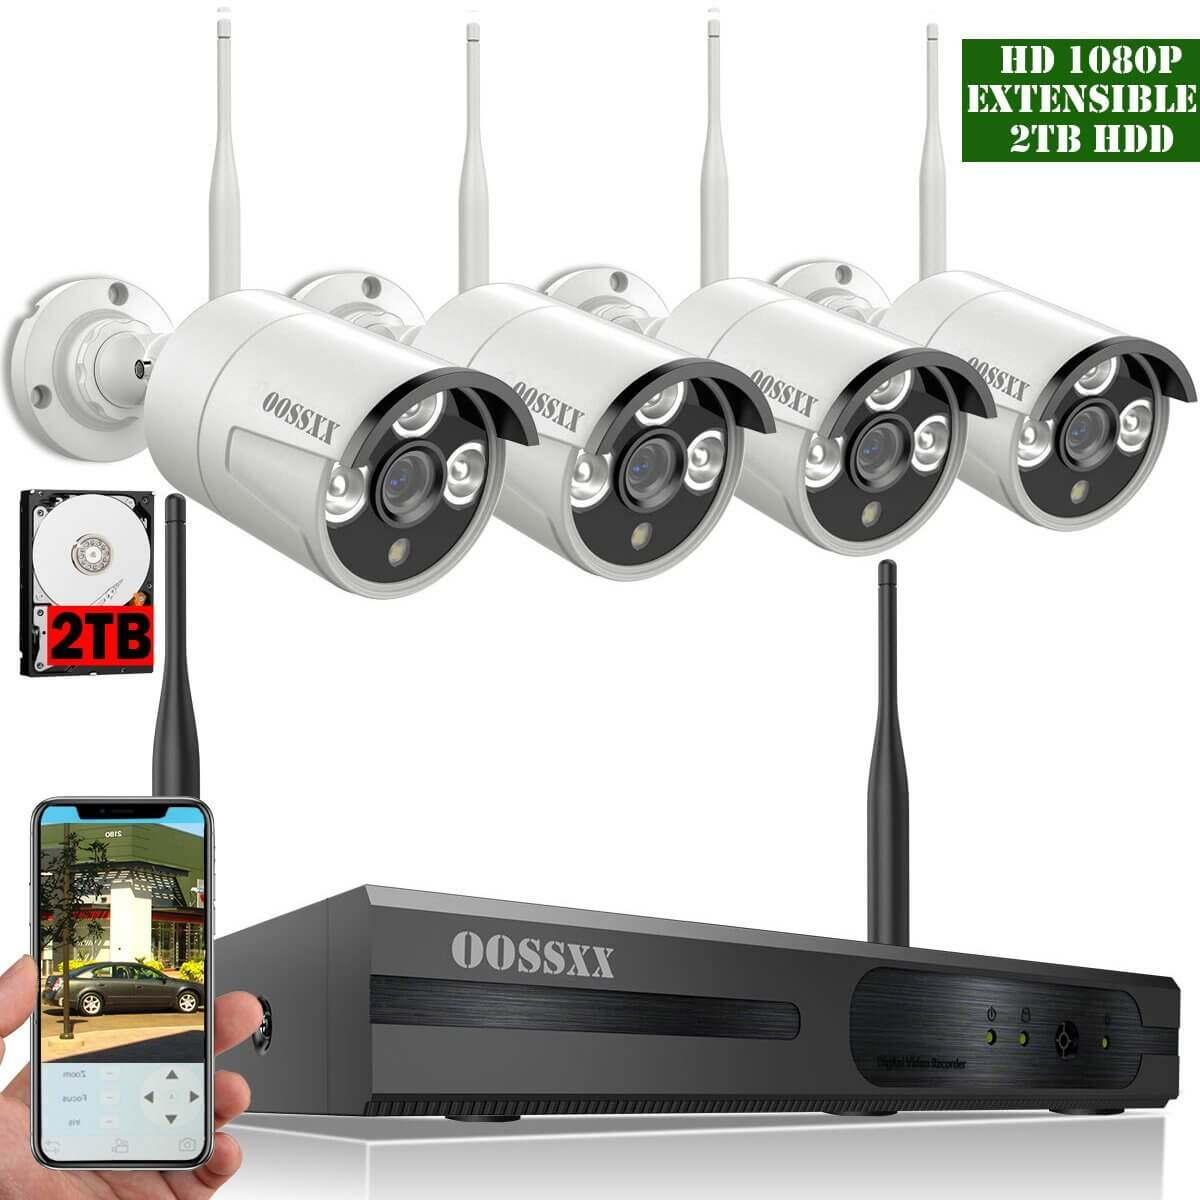 Best Wireless Outdoor Security Cameras System for Home (OOSSXX 8-Channel HD 1080P Wireless IP Security Camera System)